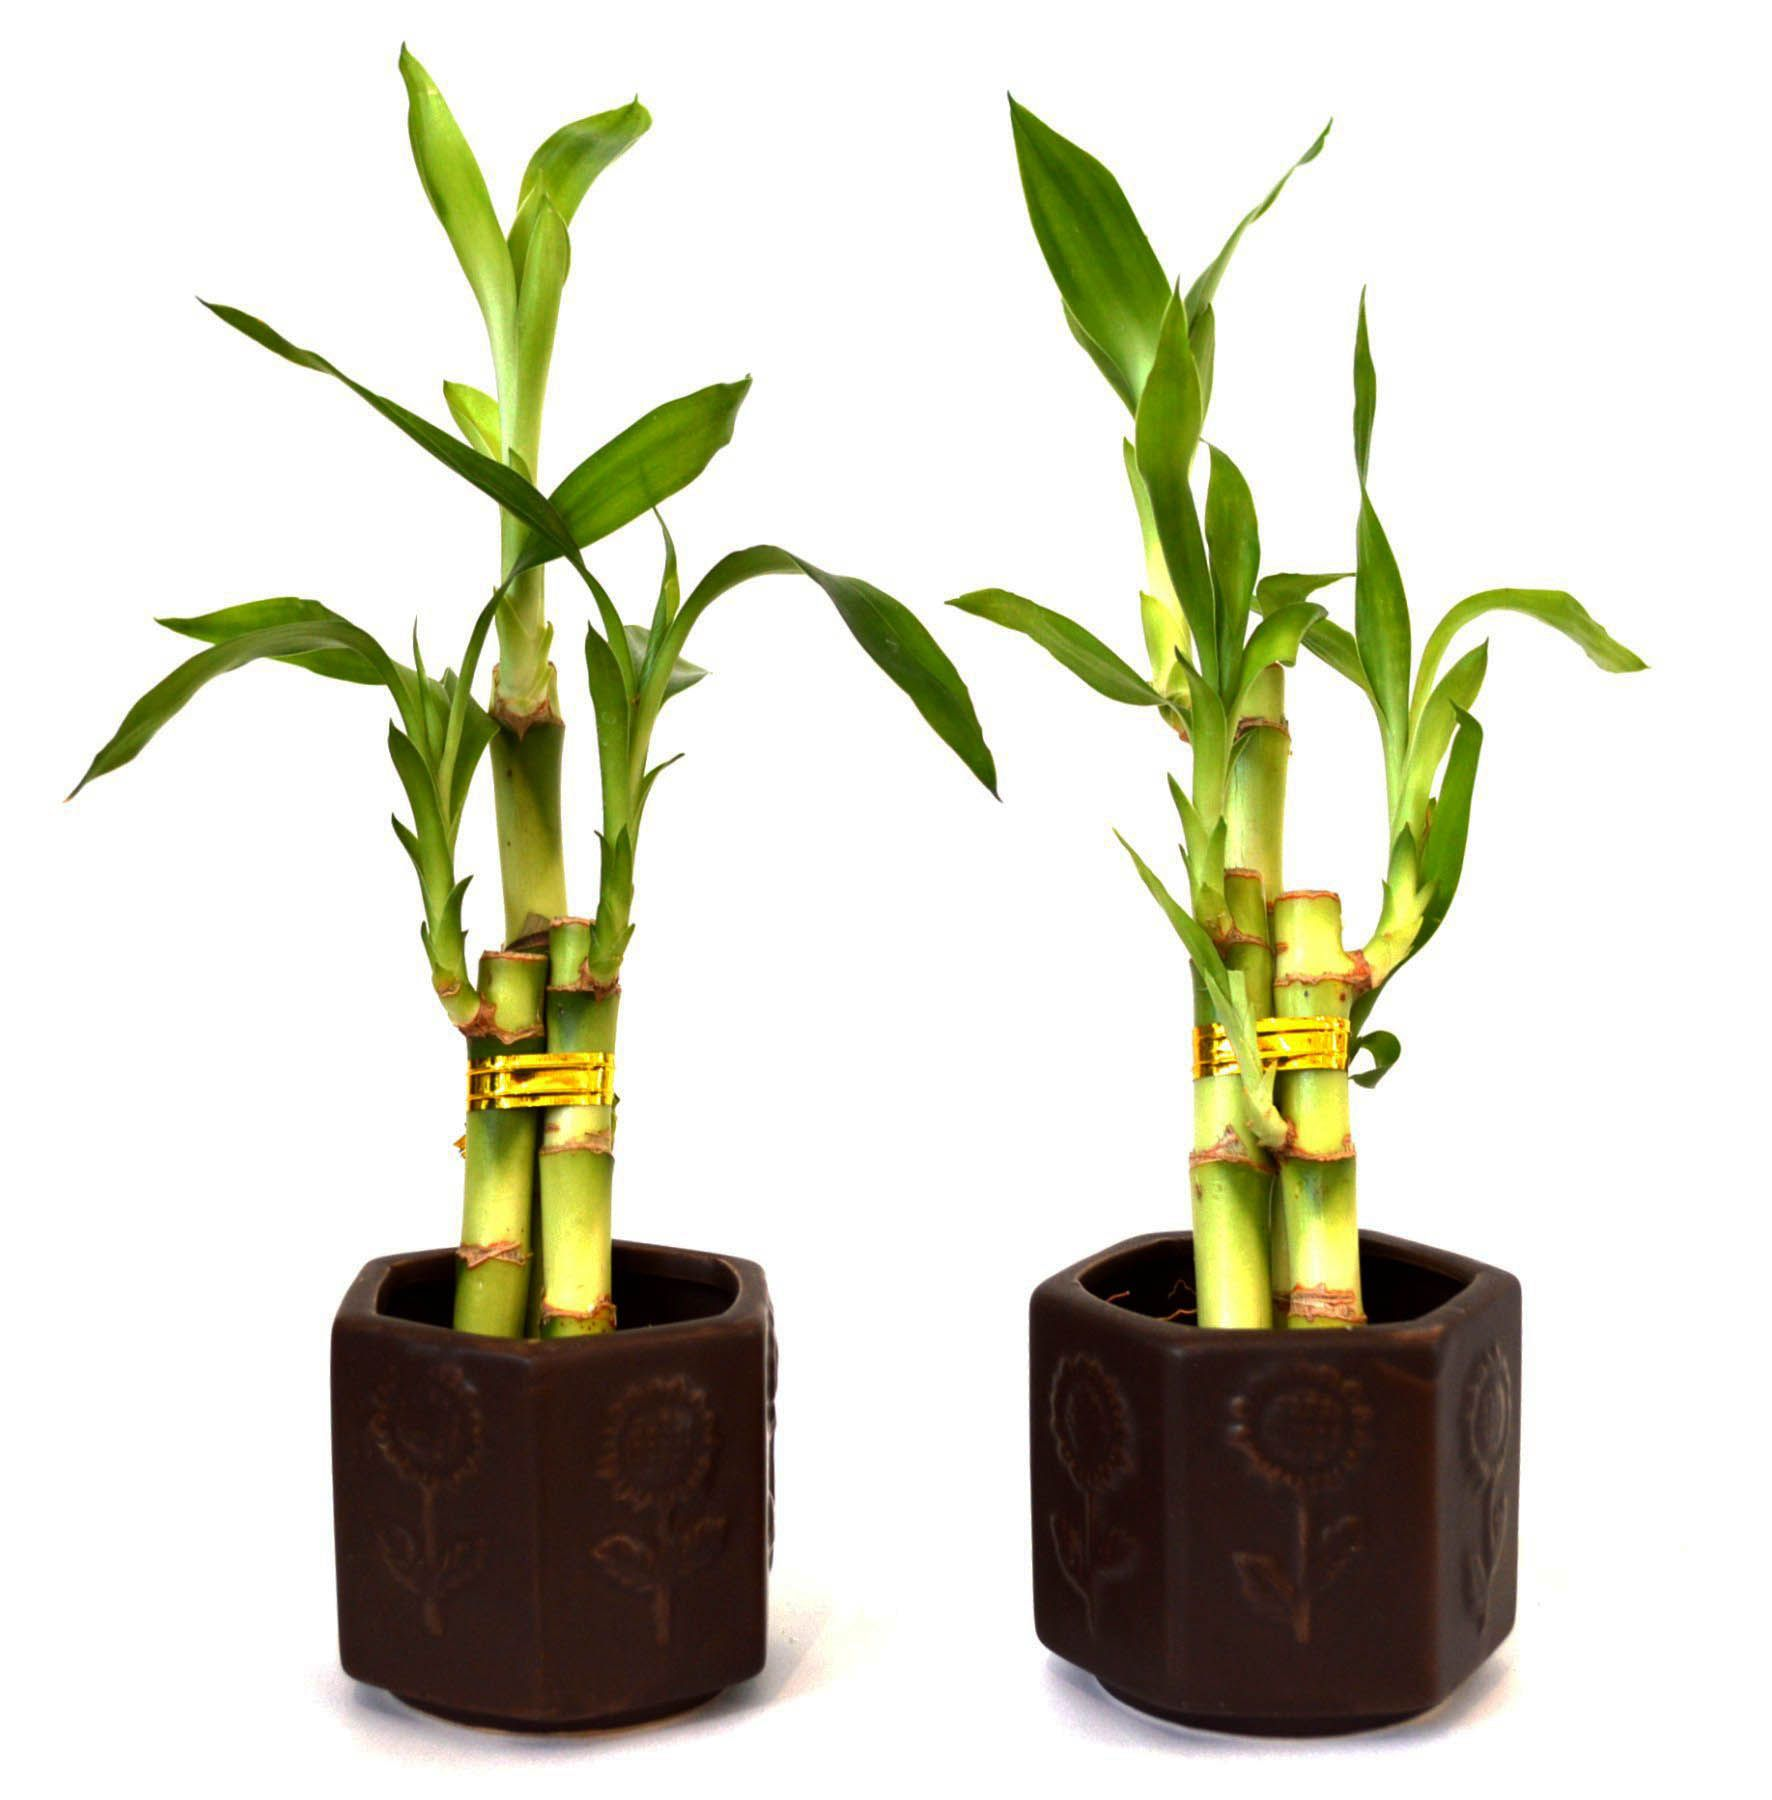 Wonderful bamboo plants ke fayde in hindi for your cozy